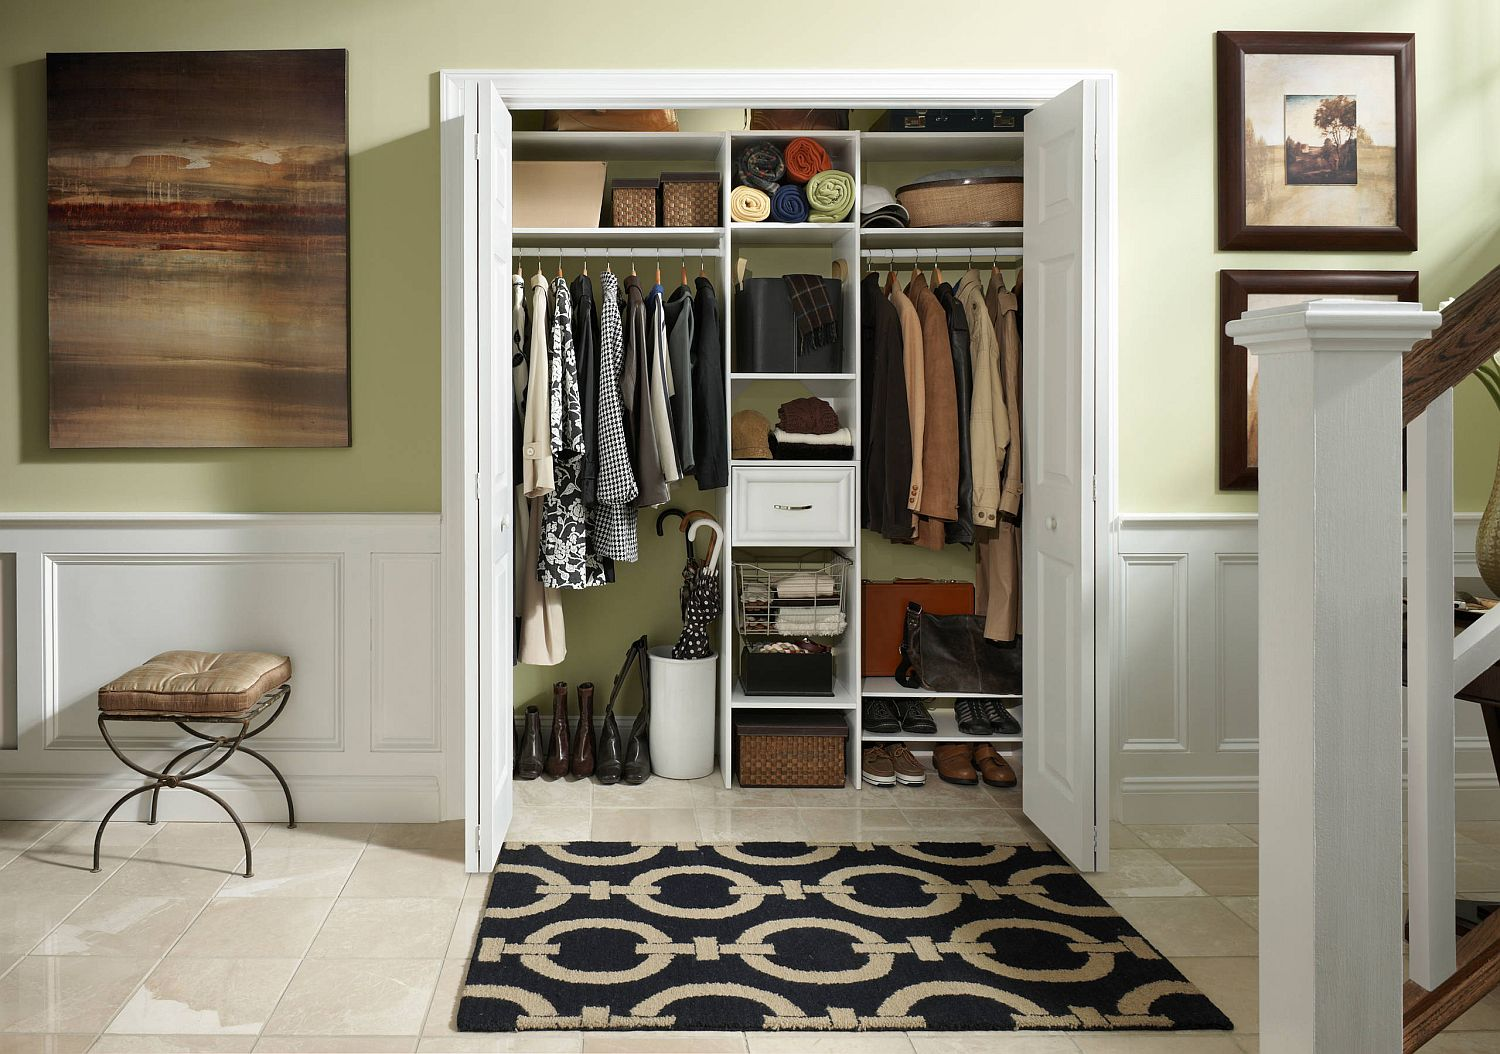 Modular-closet-soltions-for-those-who-wish-to-maximize-space